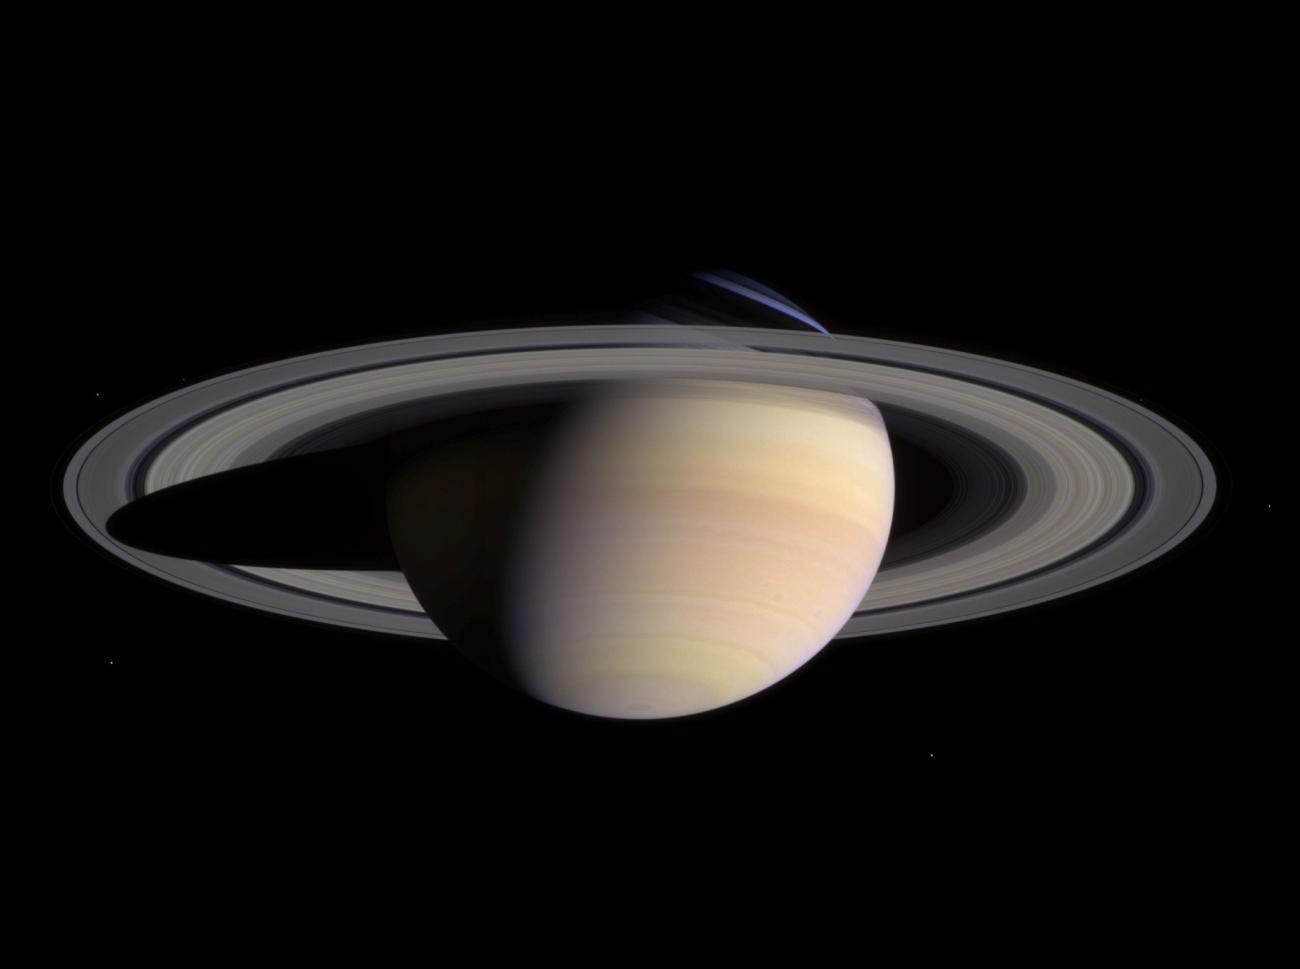 Approach to Saturn